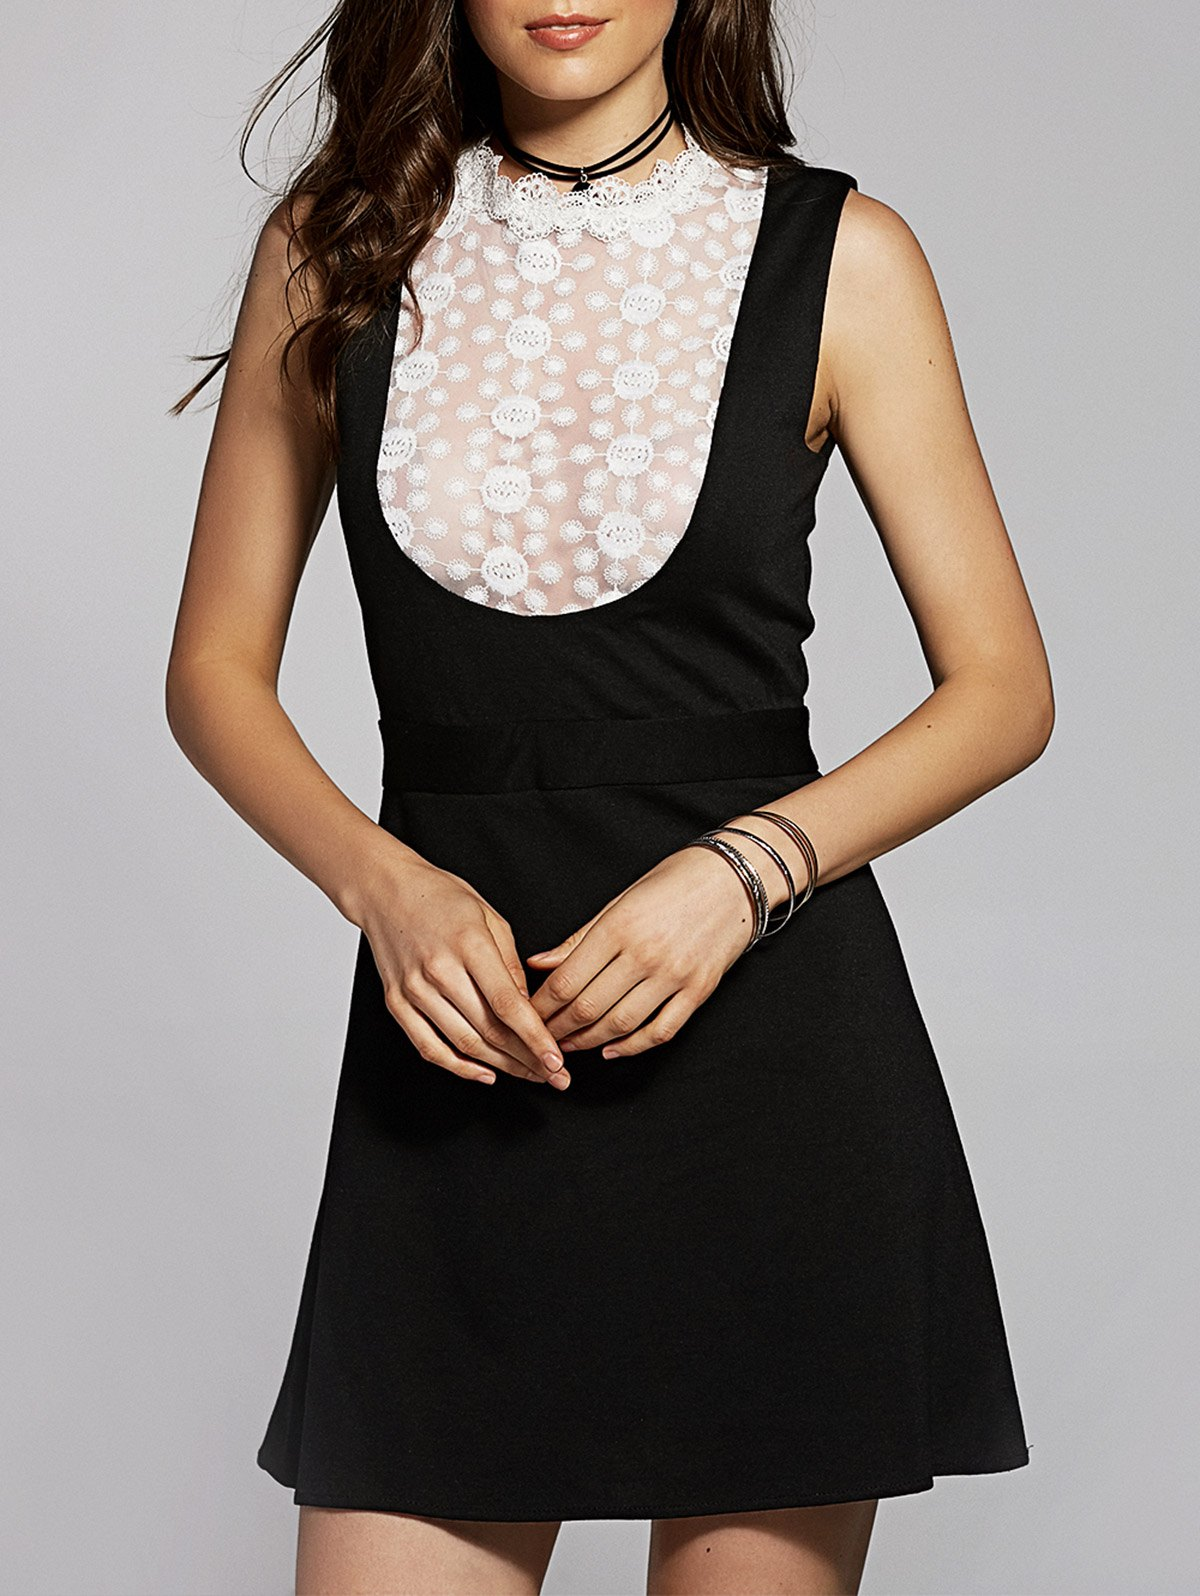 Lace Spliced Stand Neck Sleeveless DressClothes<br><br><br>Size: 2XL<br>Color: BLACK